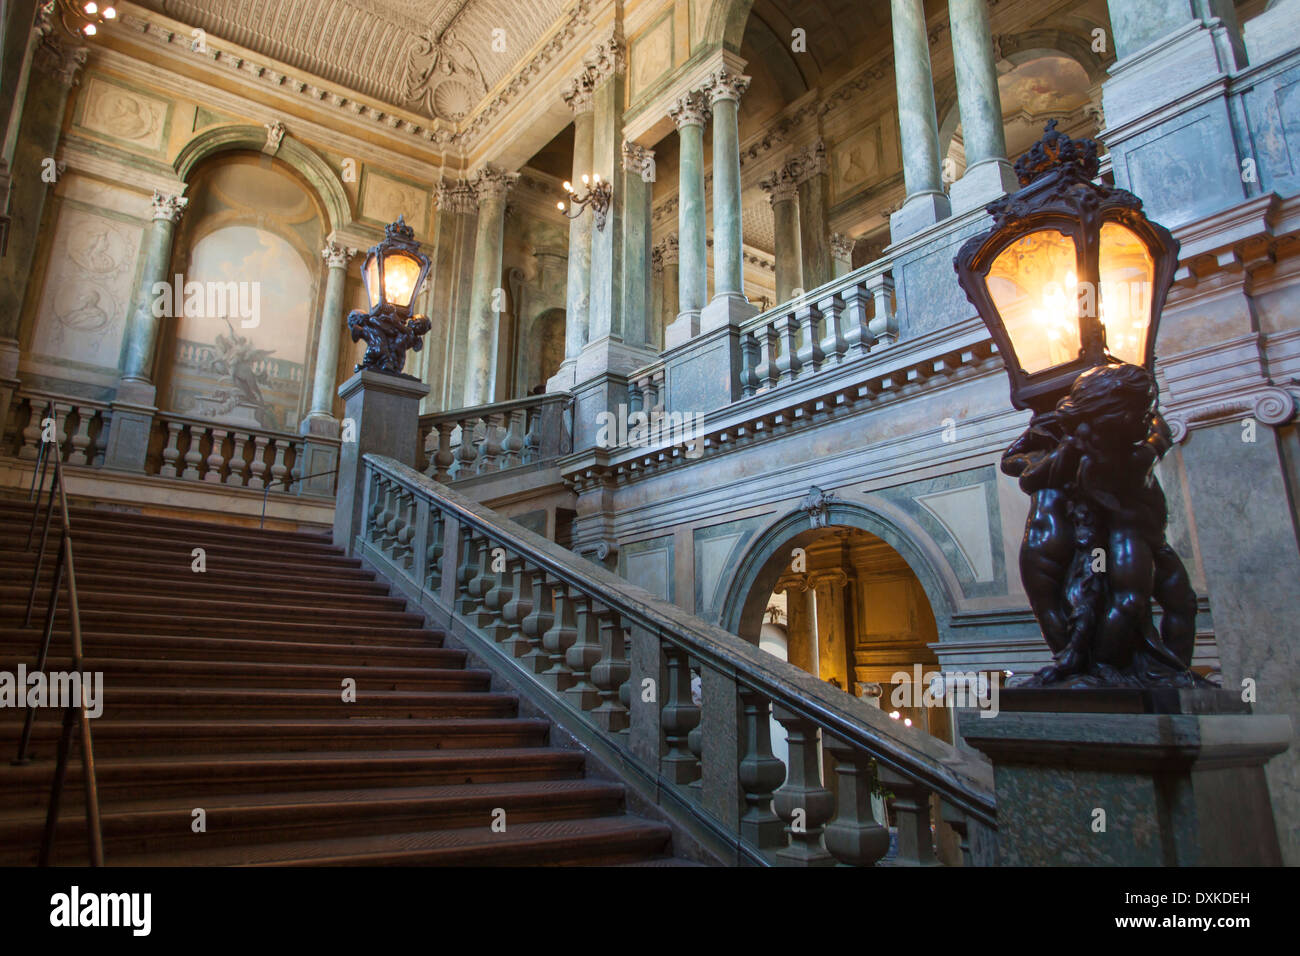 Sweden, Stockholm, Royal Palace Interiors   Stock Image